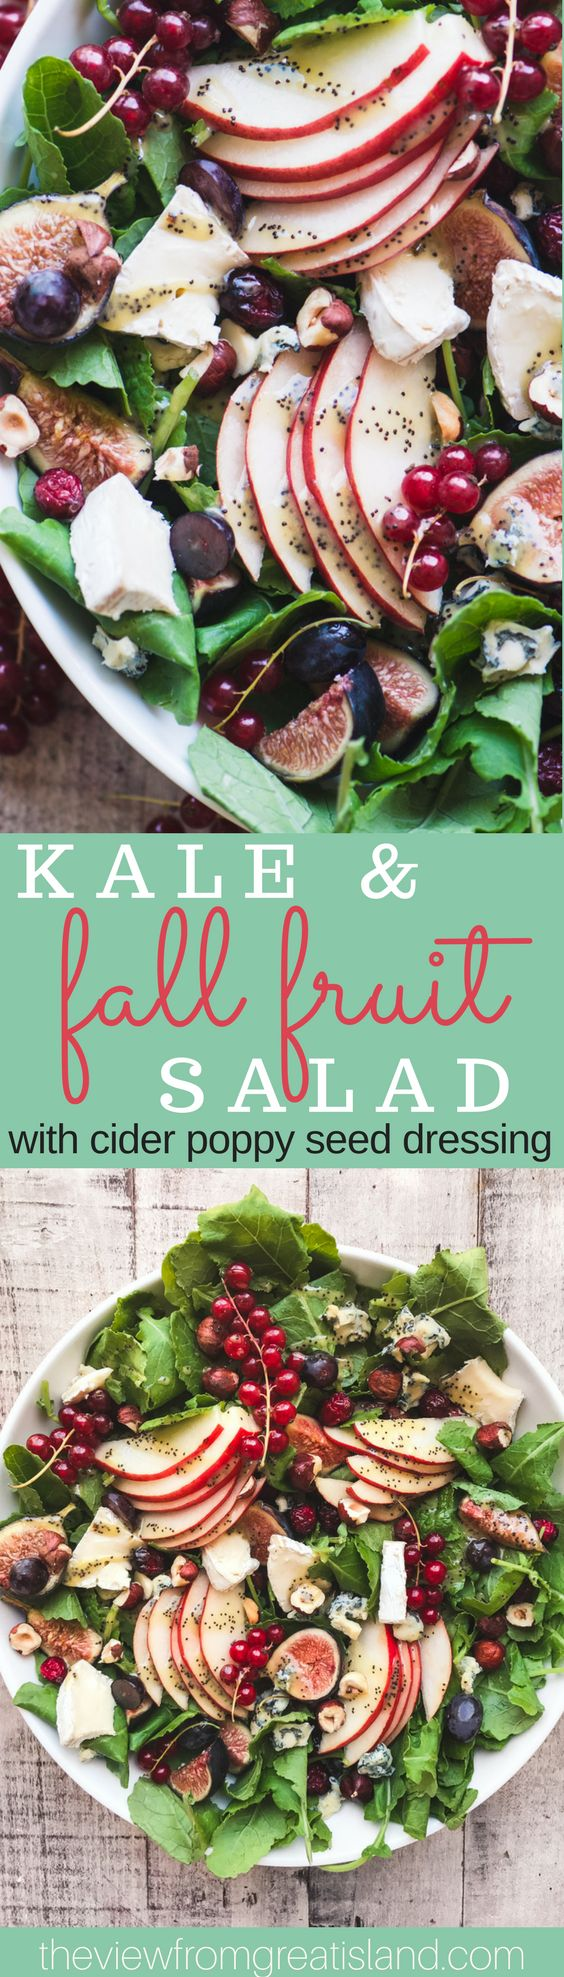 Kale and Fall Fruit Salad with Cider Poppy Seed Dressing